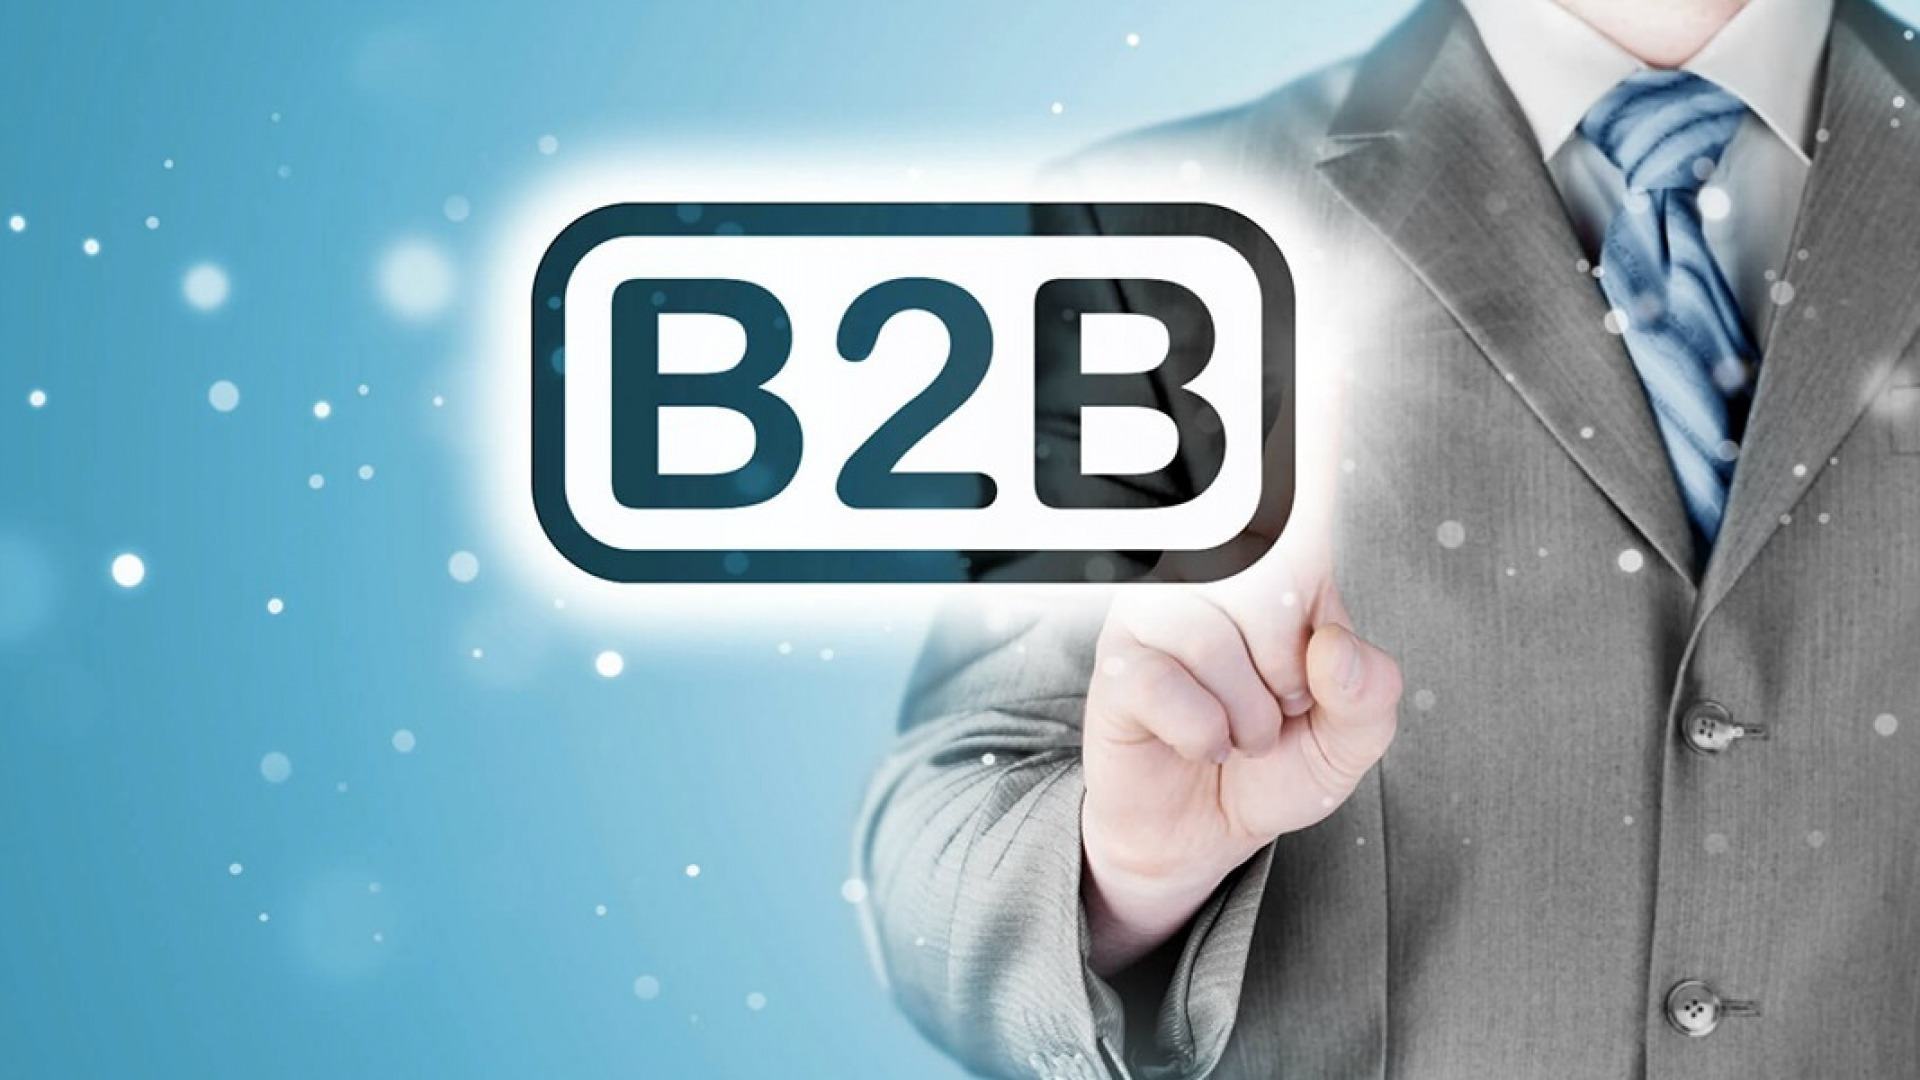 La strategia marketing B2B